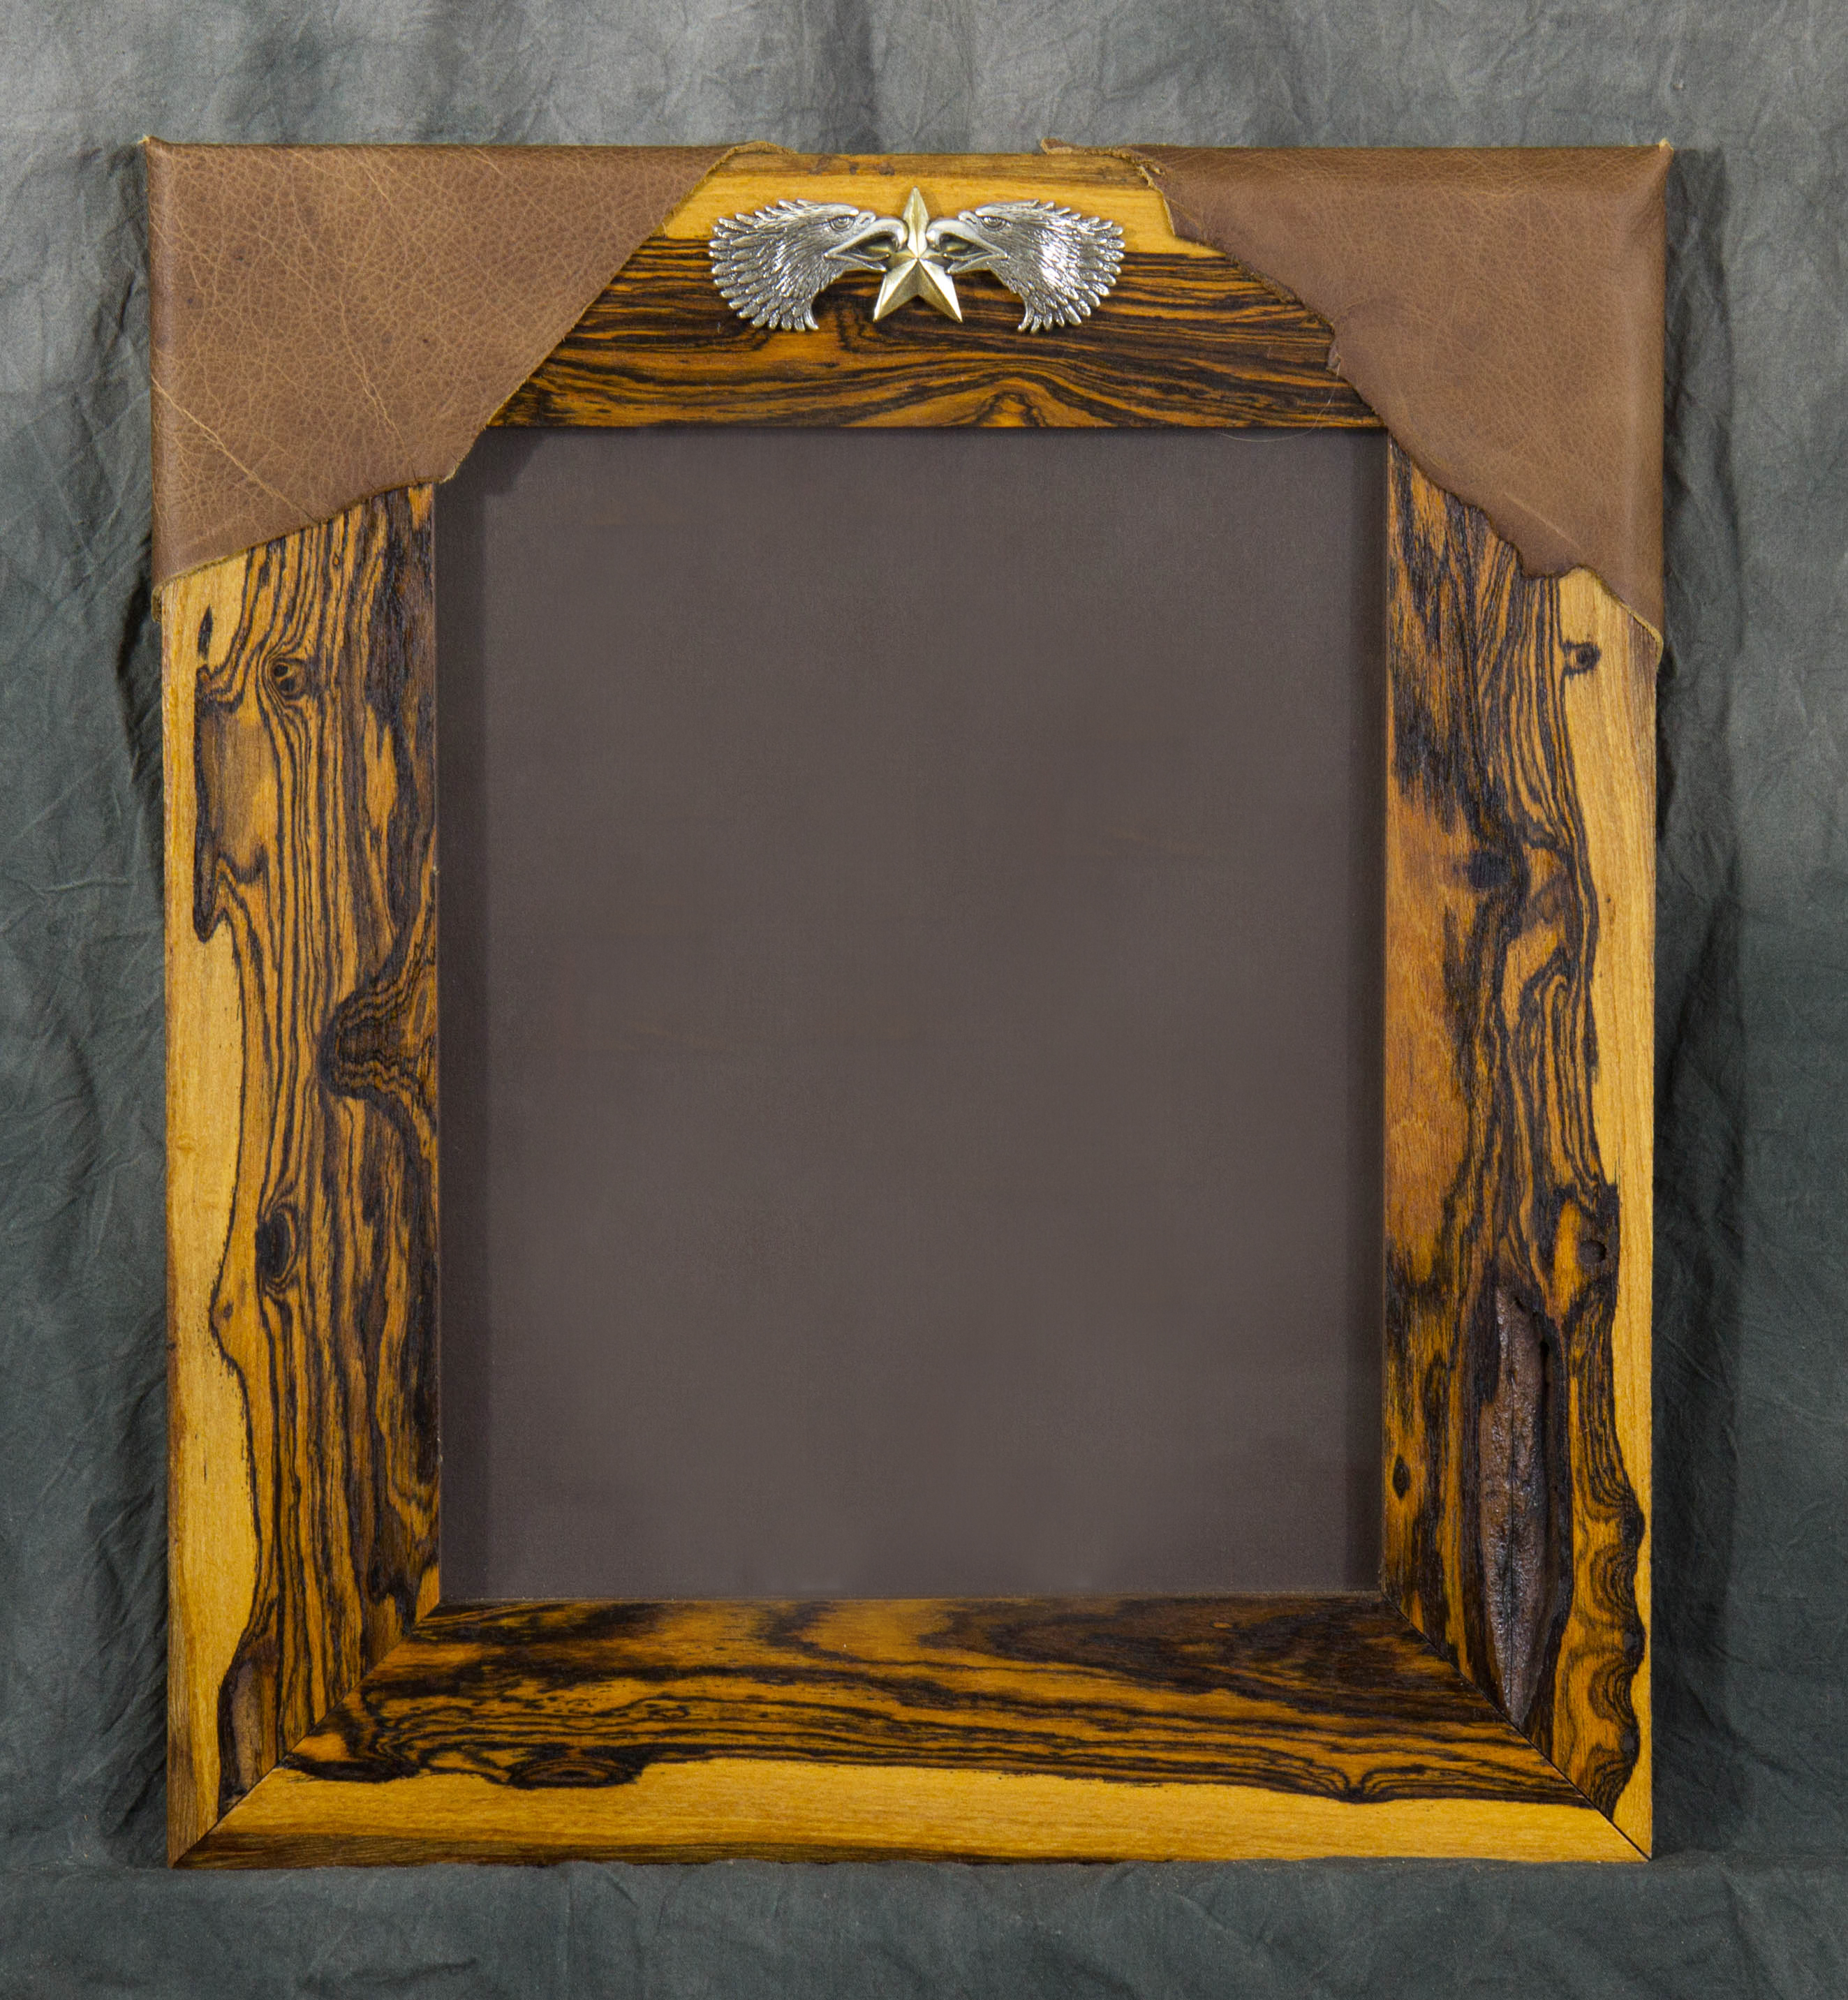 NATIVE EDGE PHOTO FRAMES  Custom handcrafted solid wood